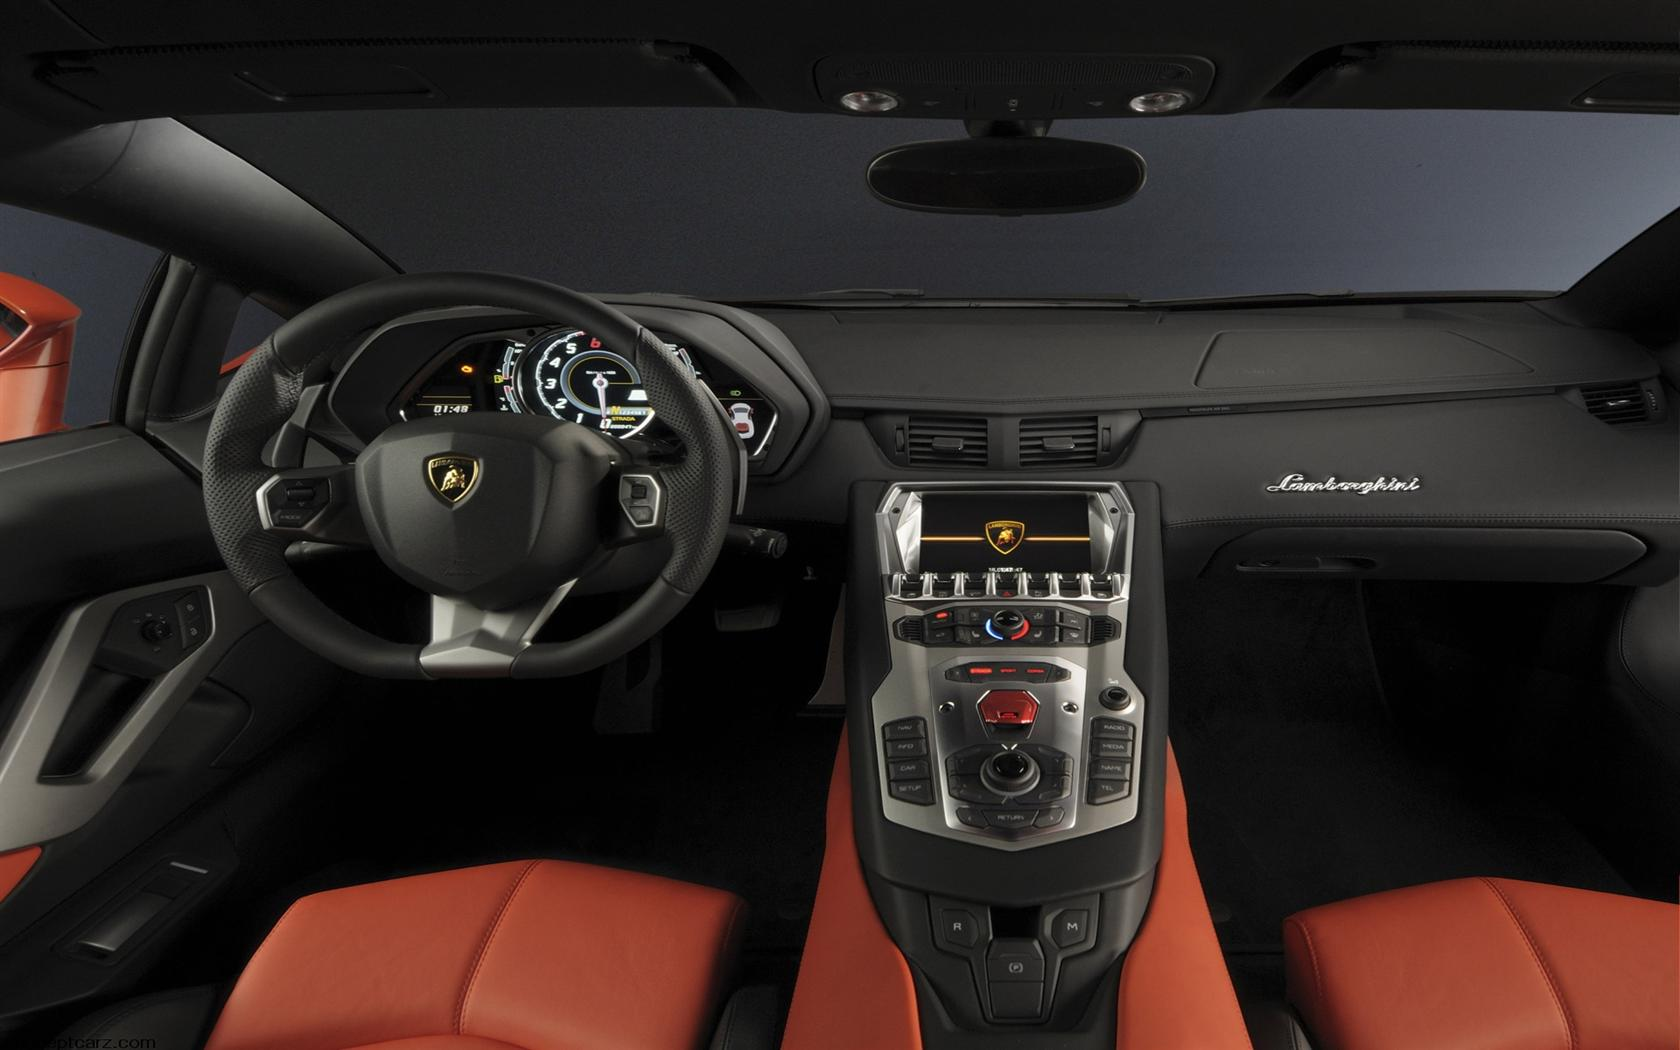 2012 Lamborghini Aventador LP 700-4 Desktop Wallpaper and ...